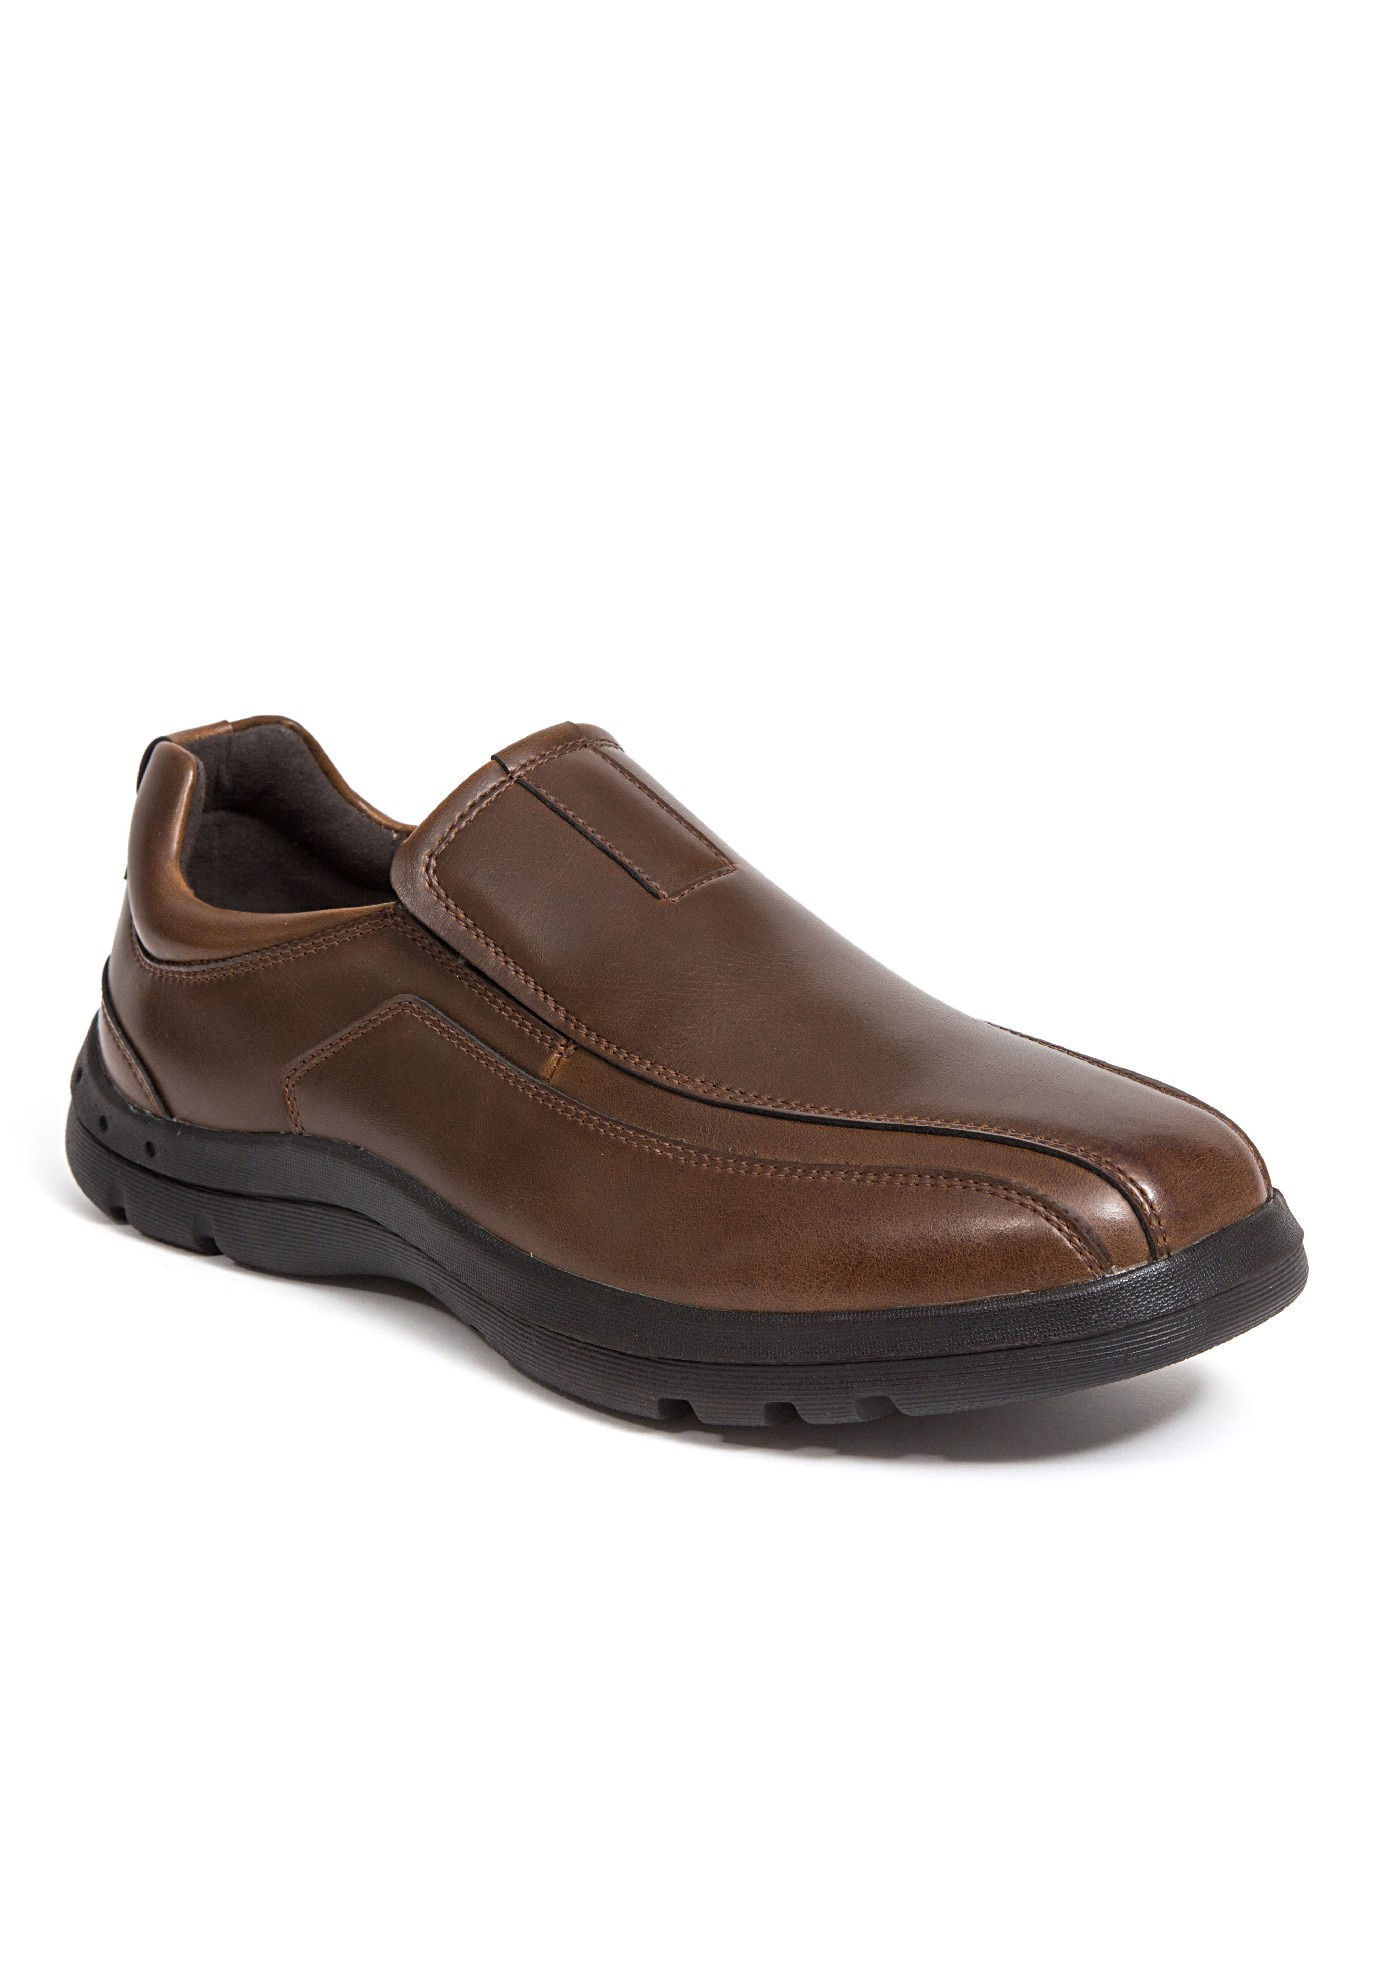 Deer Stags® Saxon Slip-On Shoes,